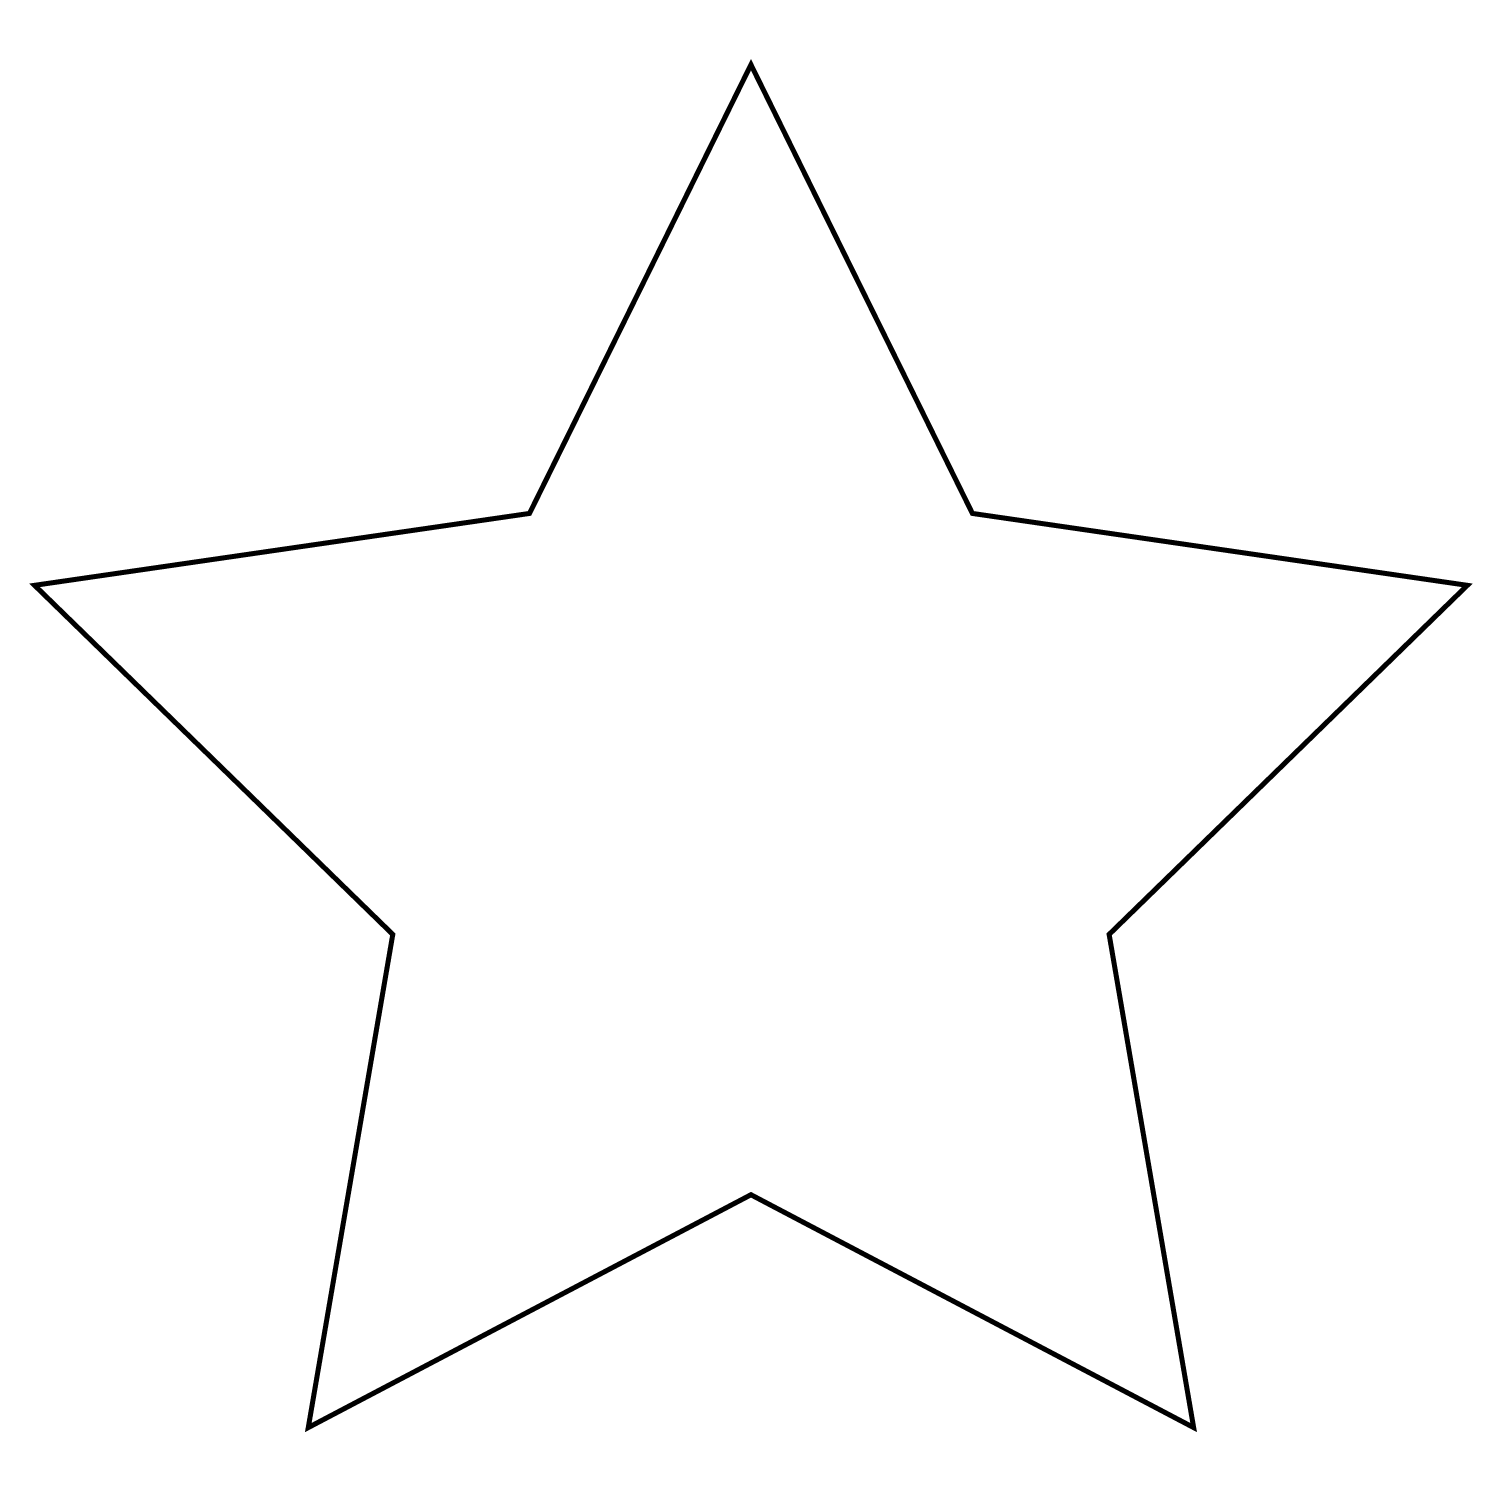 coloring star images free printable star download free clip art free clip art star coloring images